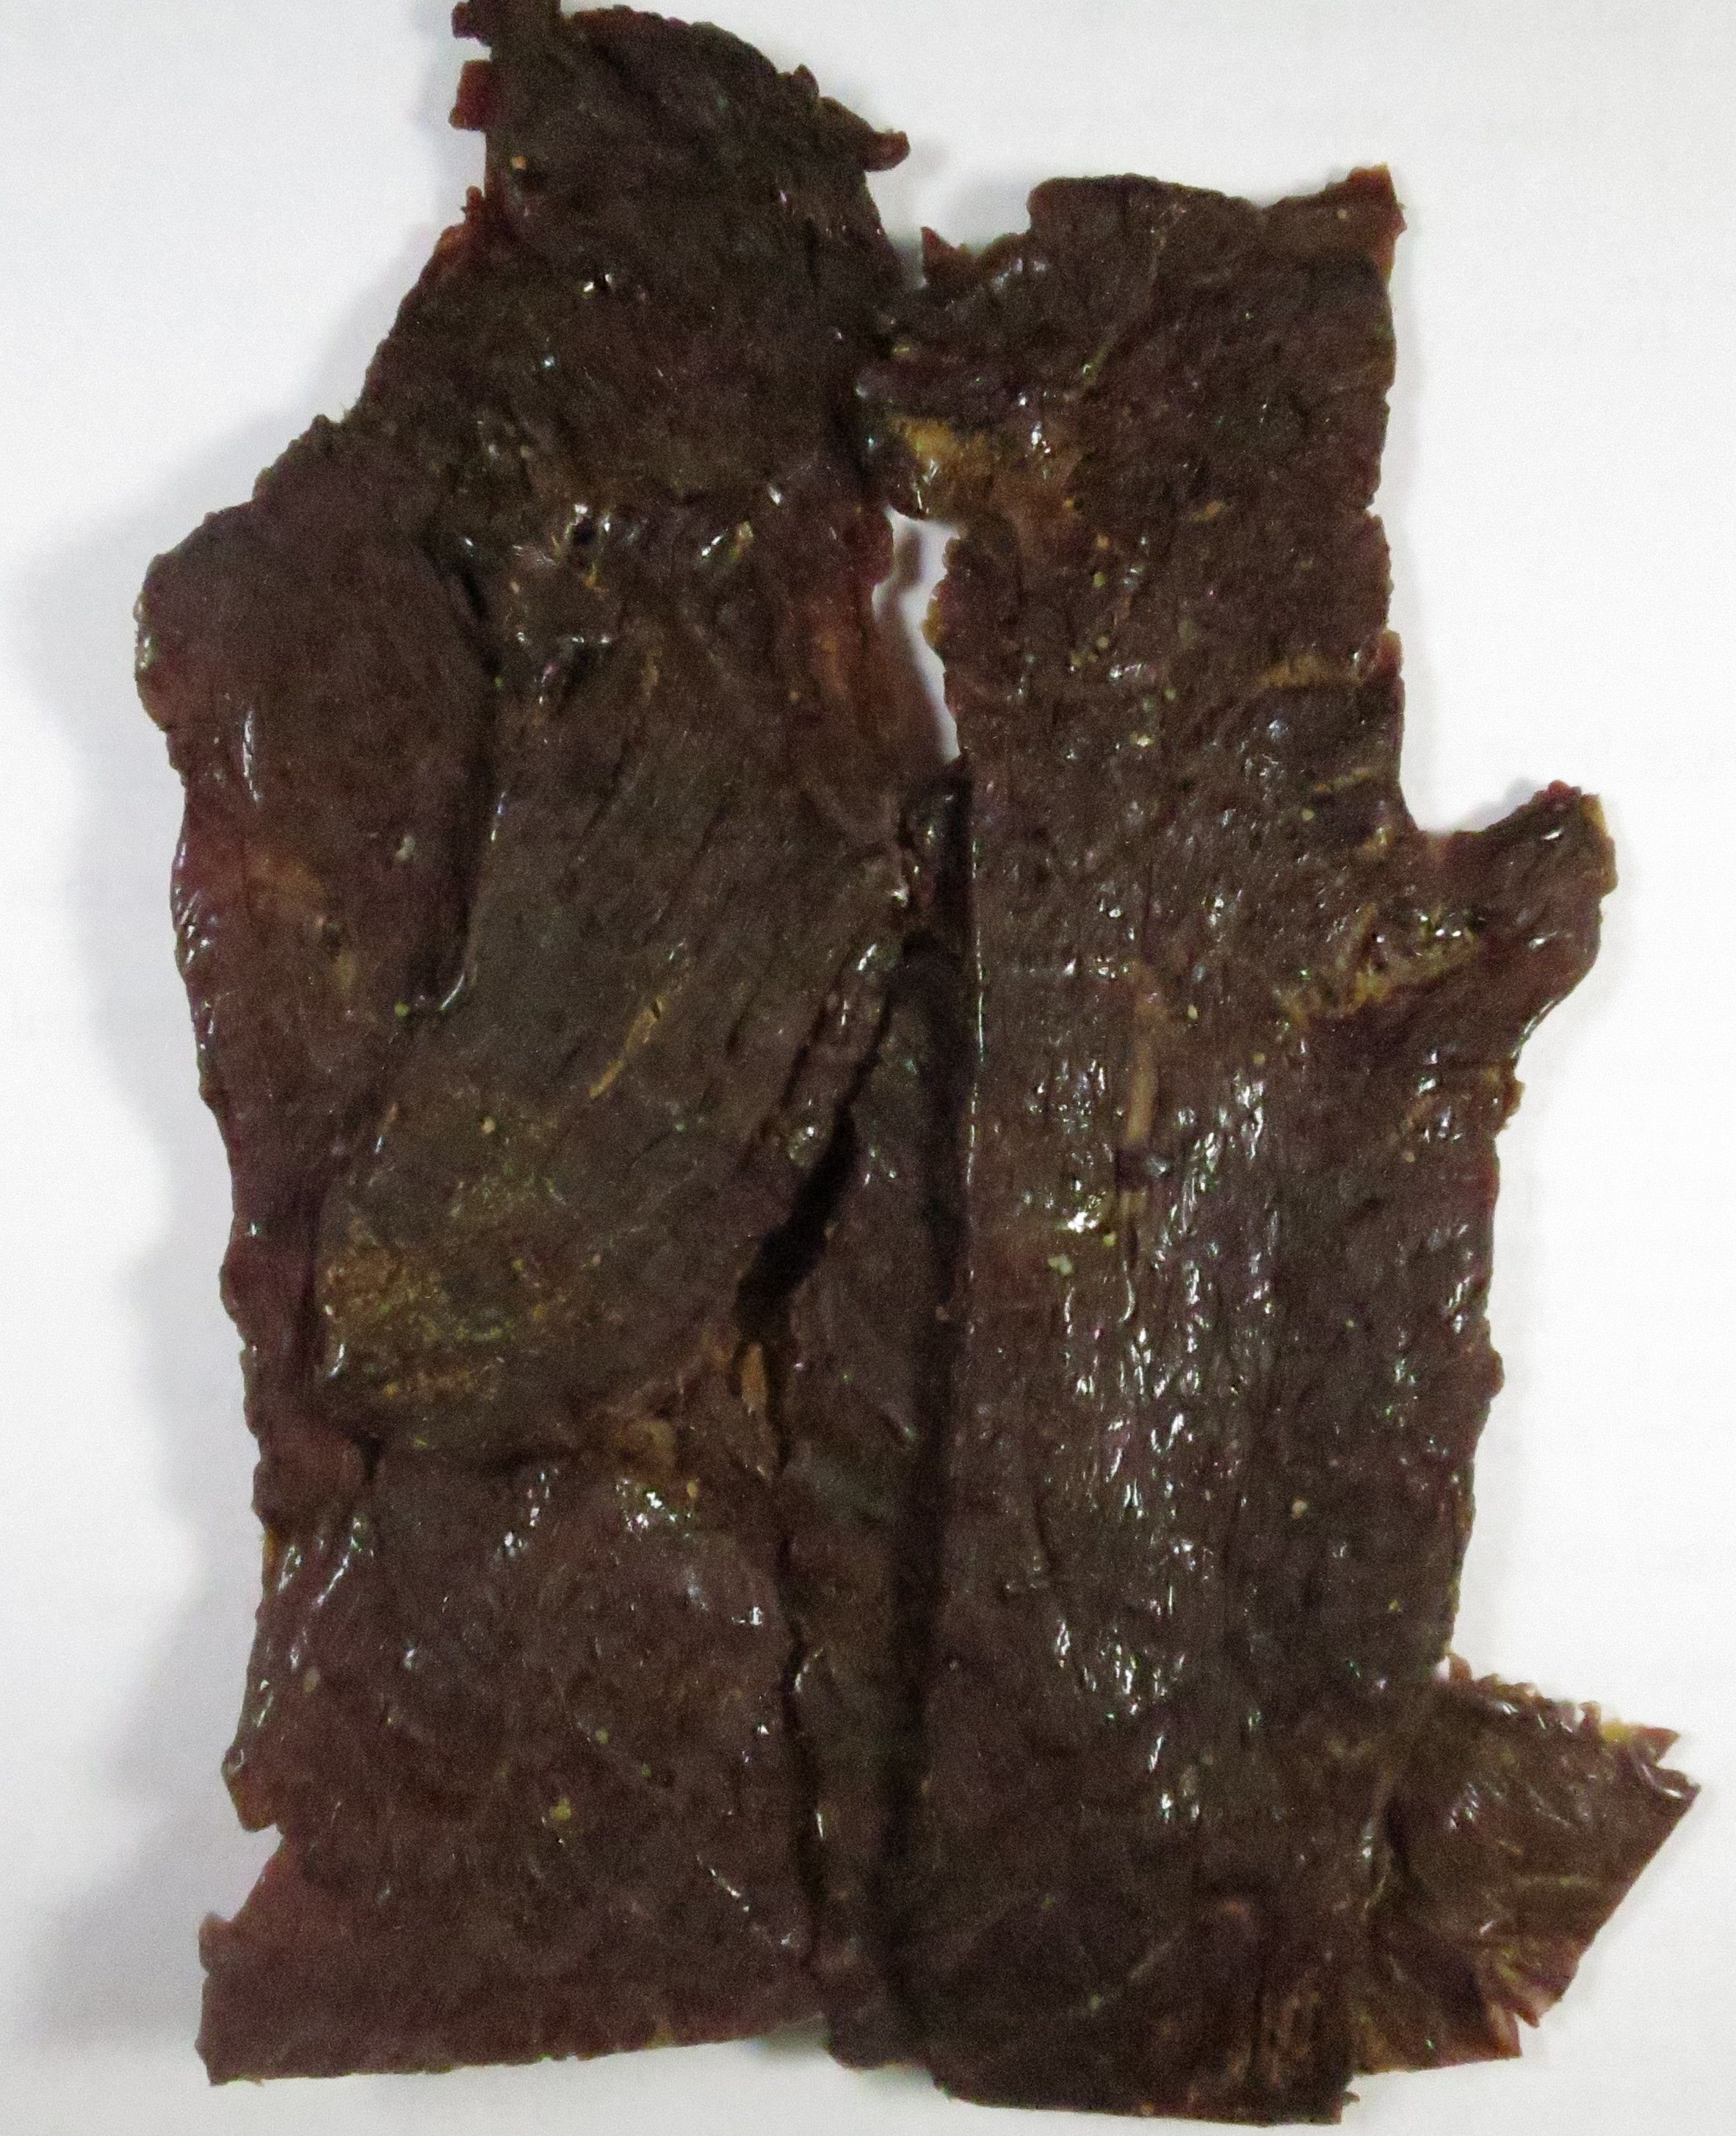 Discover How House Of Jerky Natural Style Beef Jerky Fared In A Jerky Review Http Jerkyingredients Com 2015 09 15 House Of J Beef Jerky Beef Natural Style